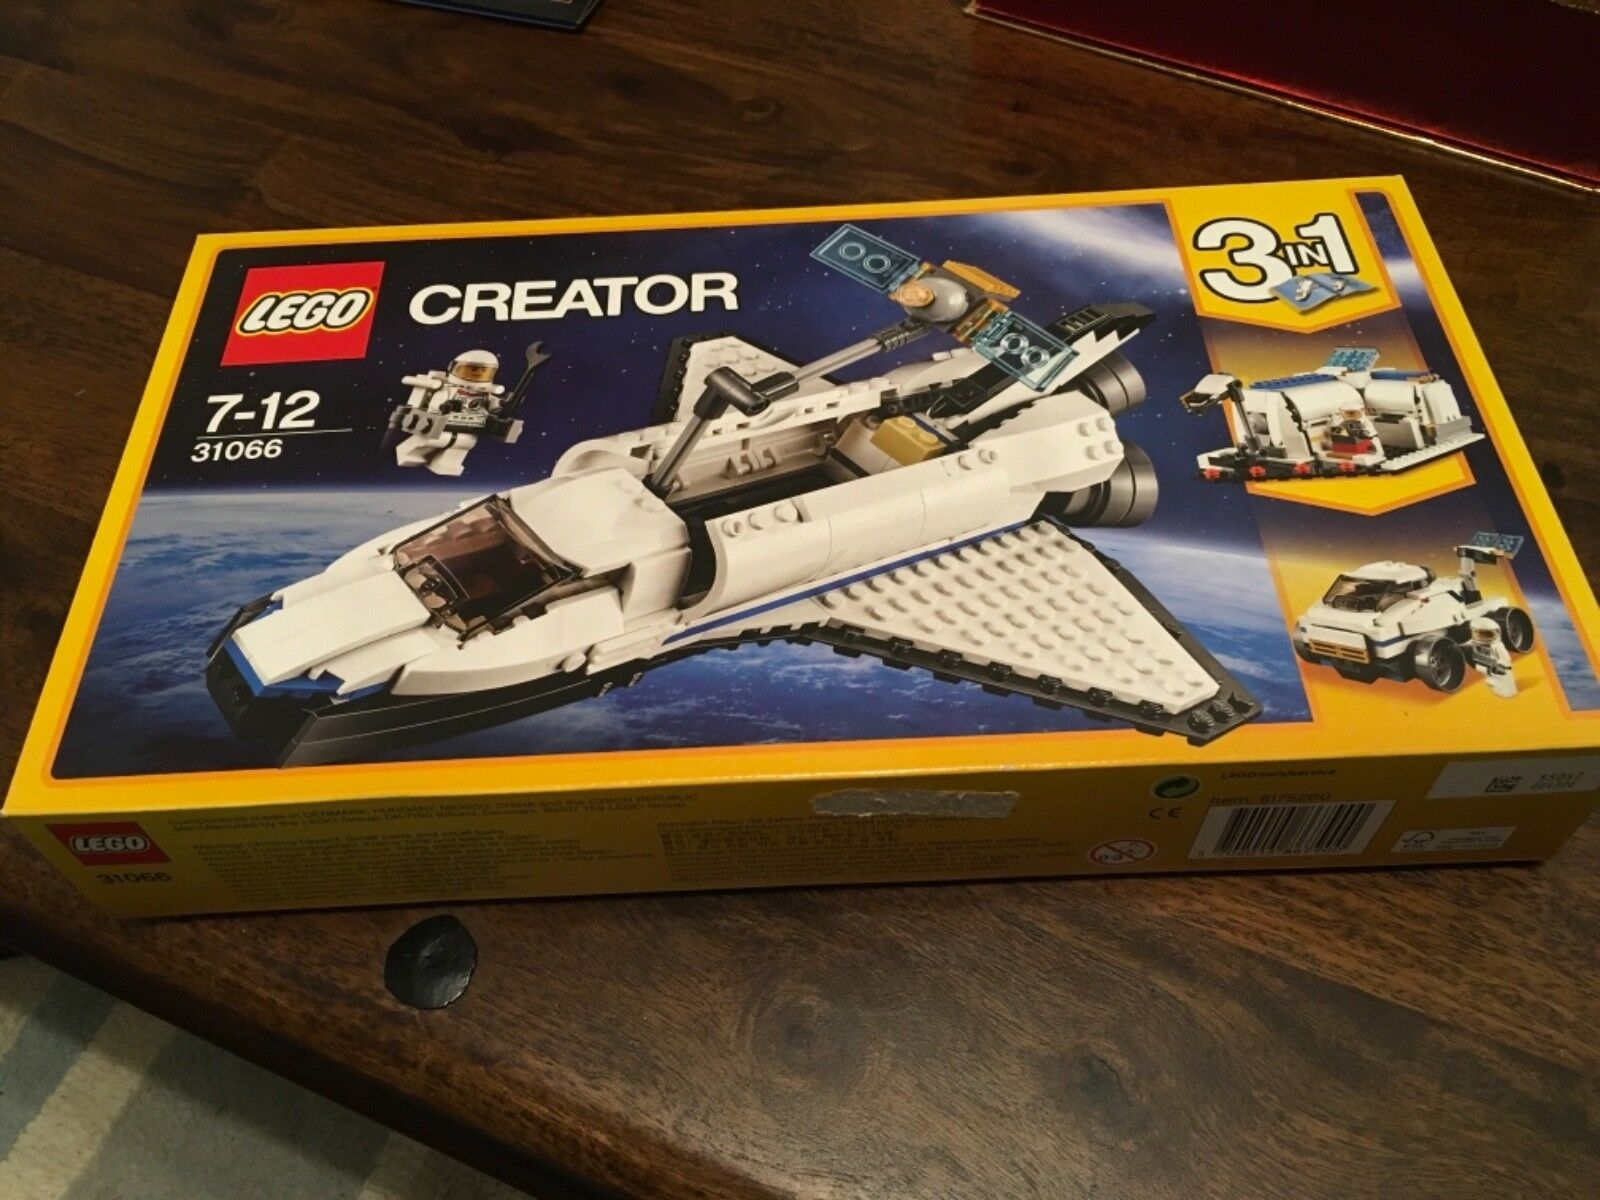 Lego Creator 31066 Space Shuttle.New and Sealed.